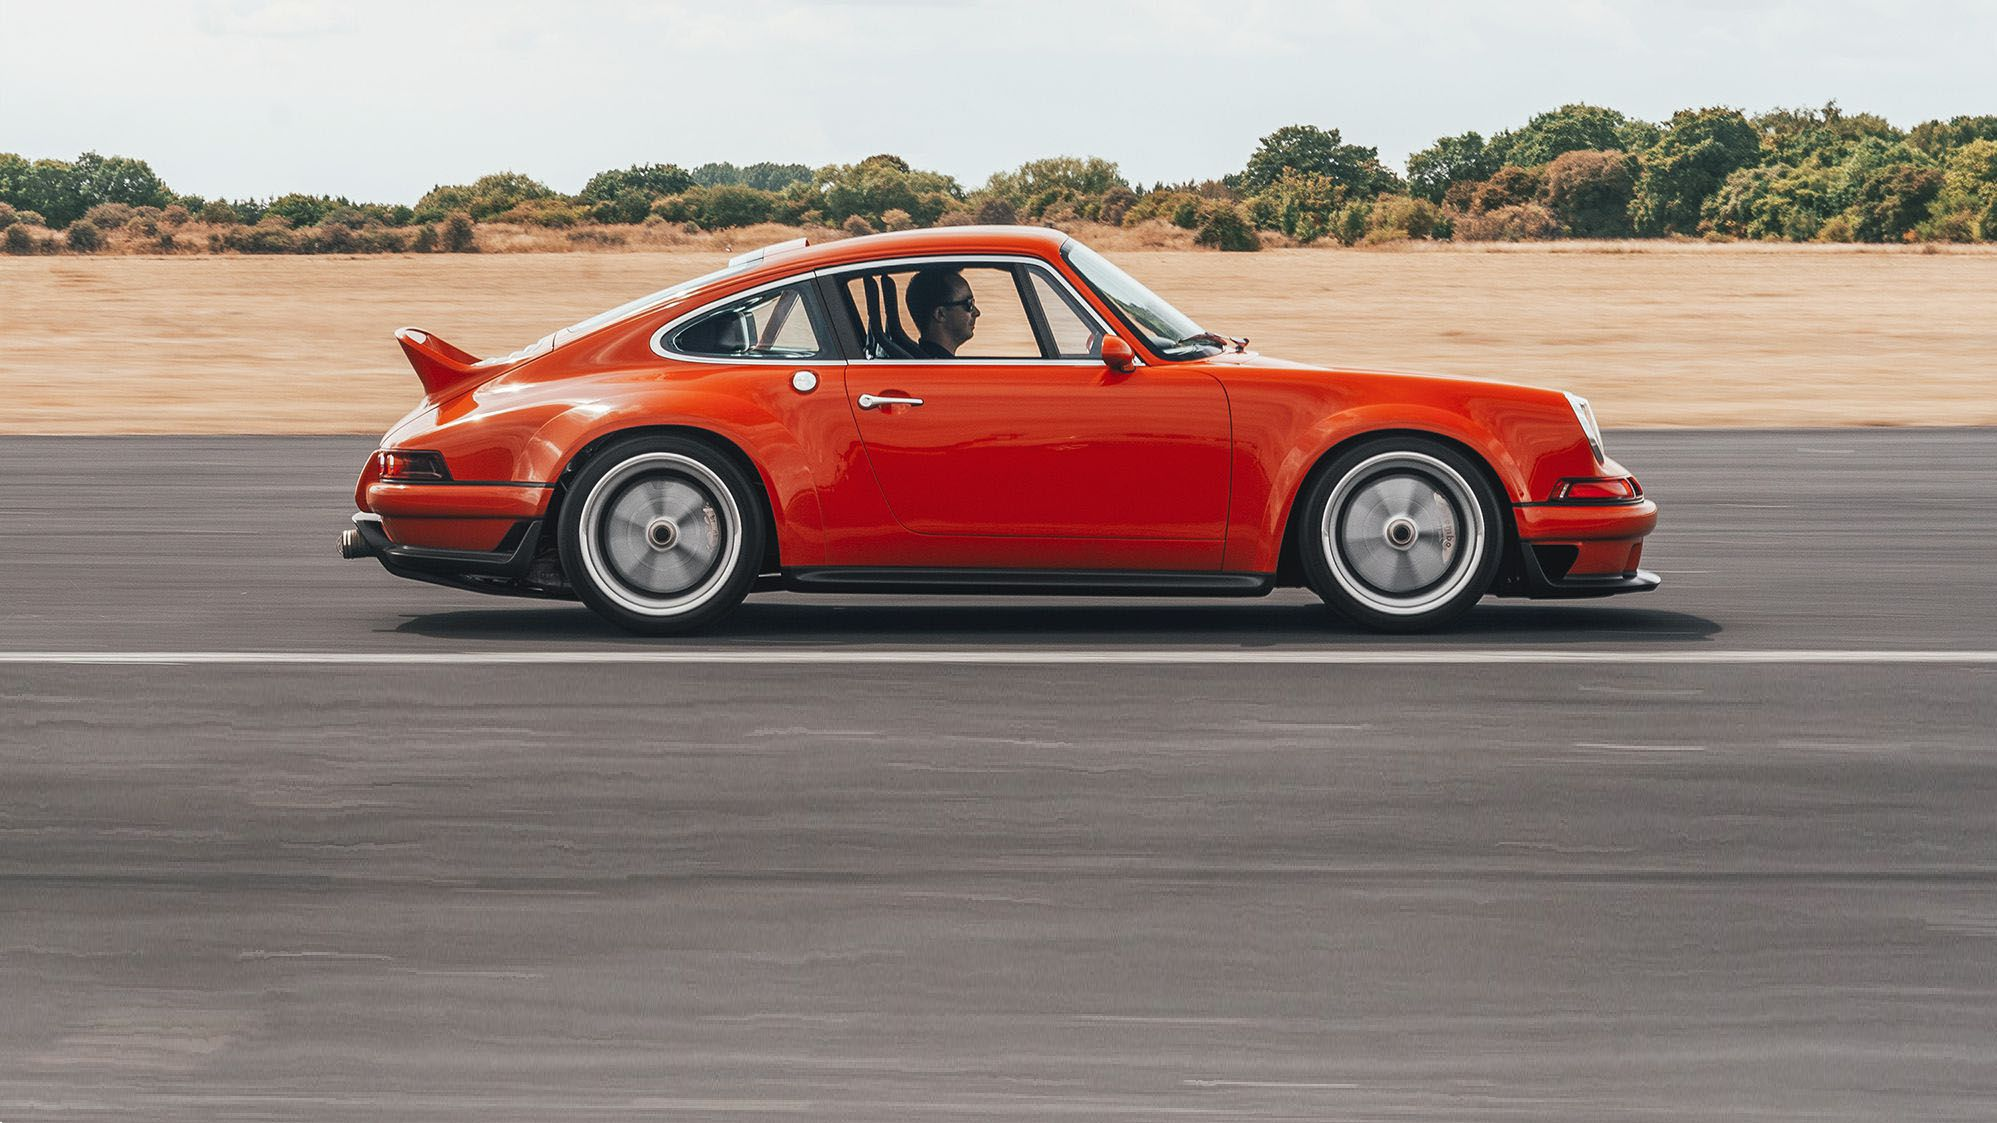 What Makes Singer and Williams's Reimagined 911 So Wild